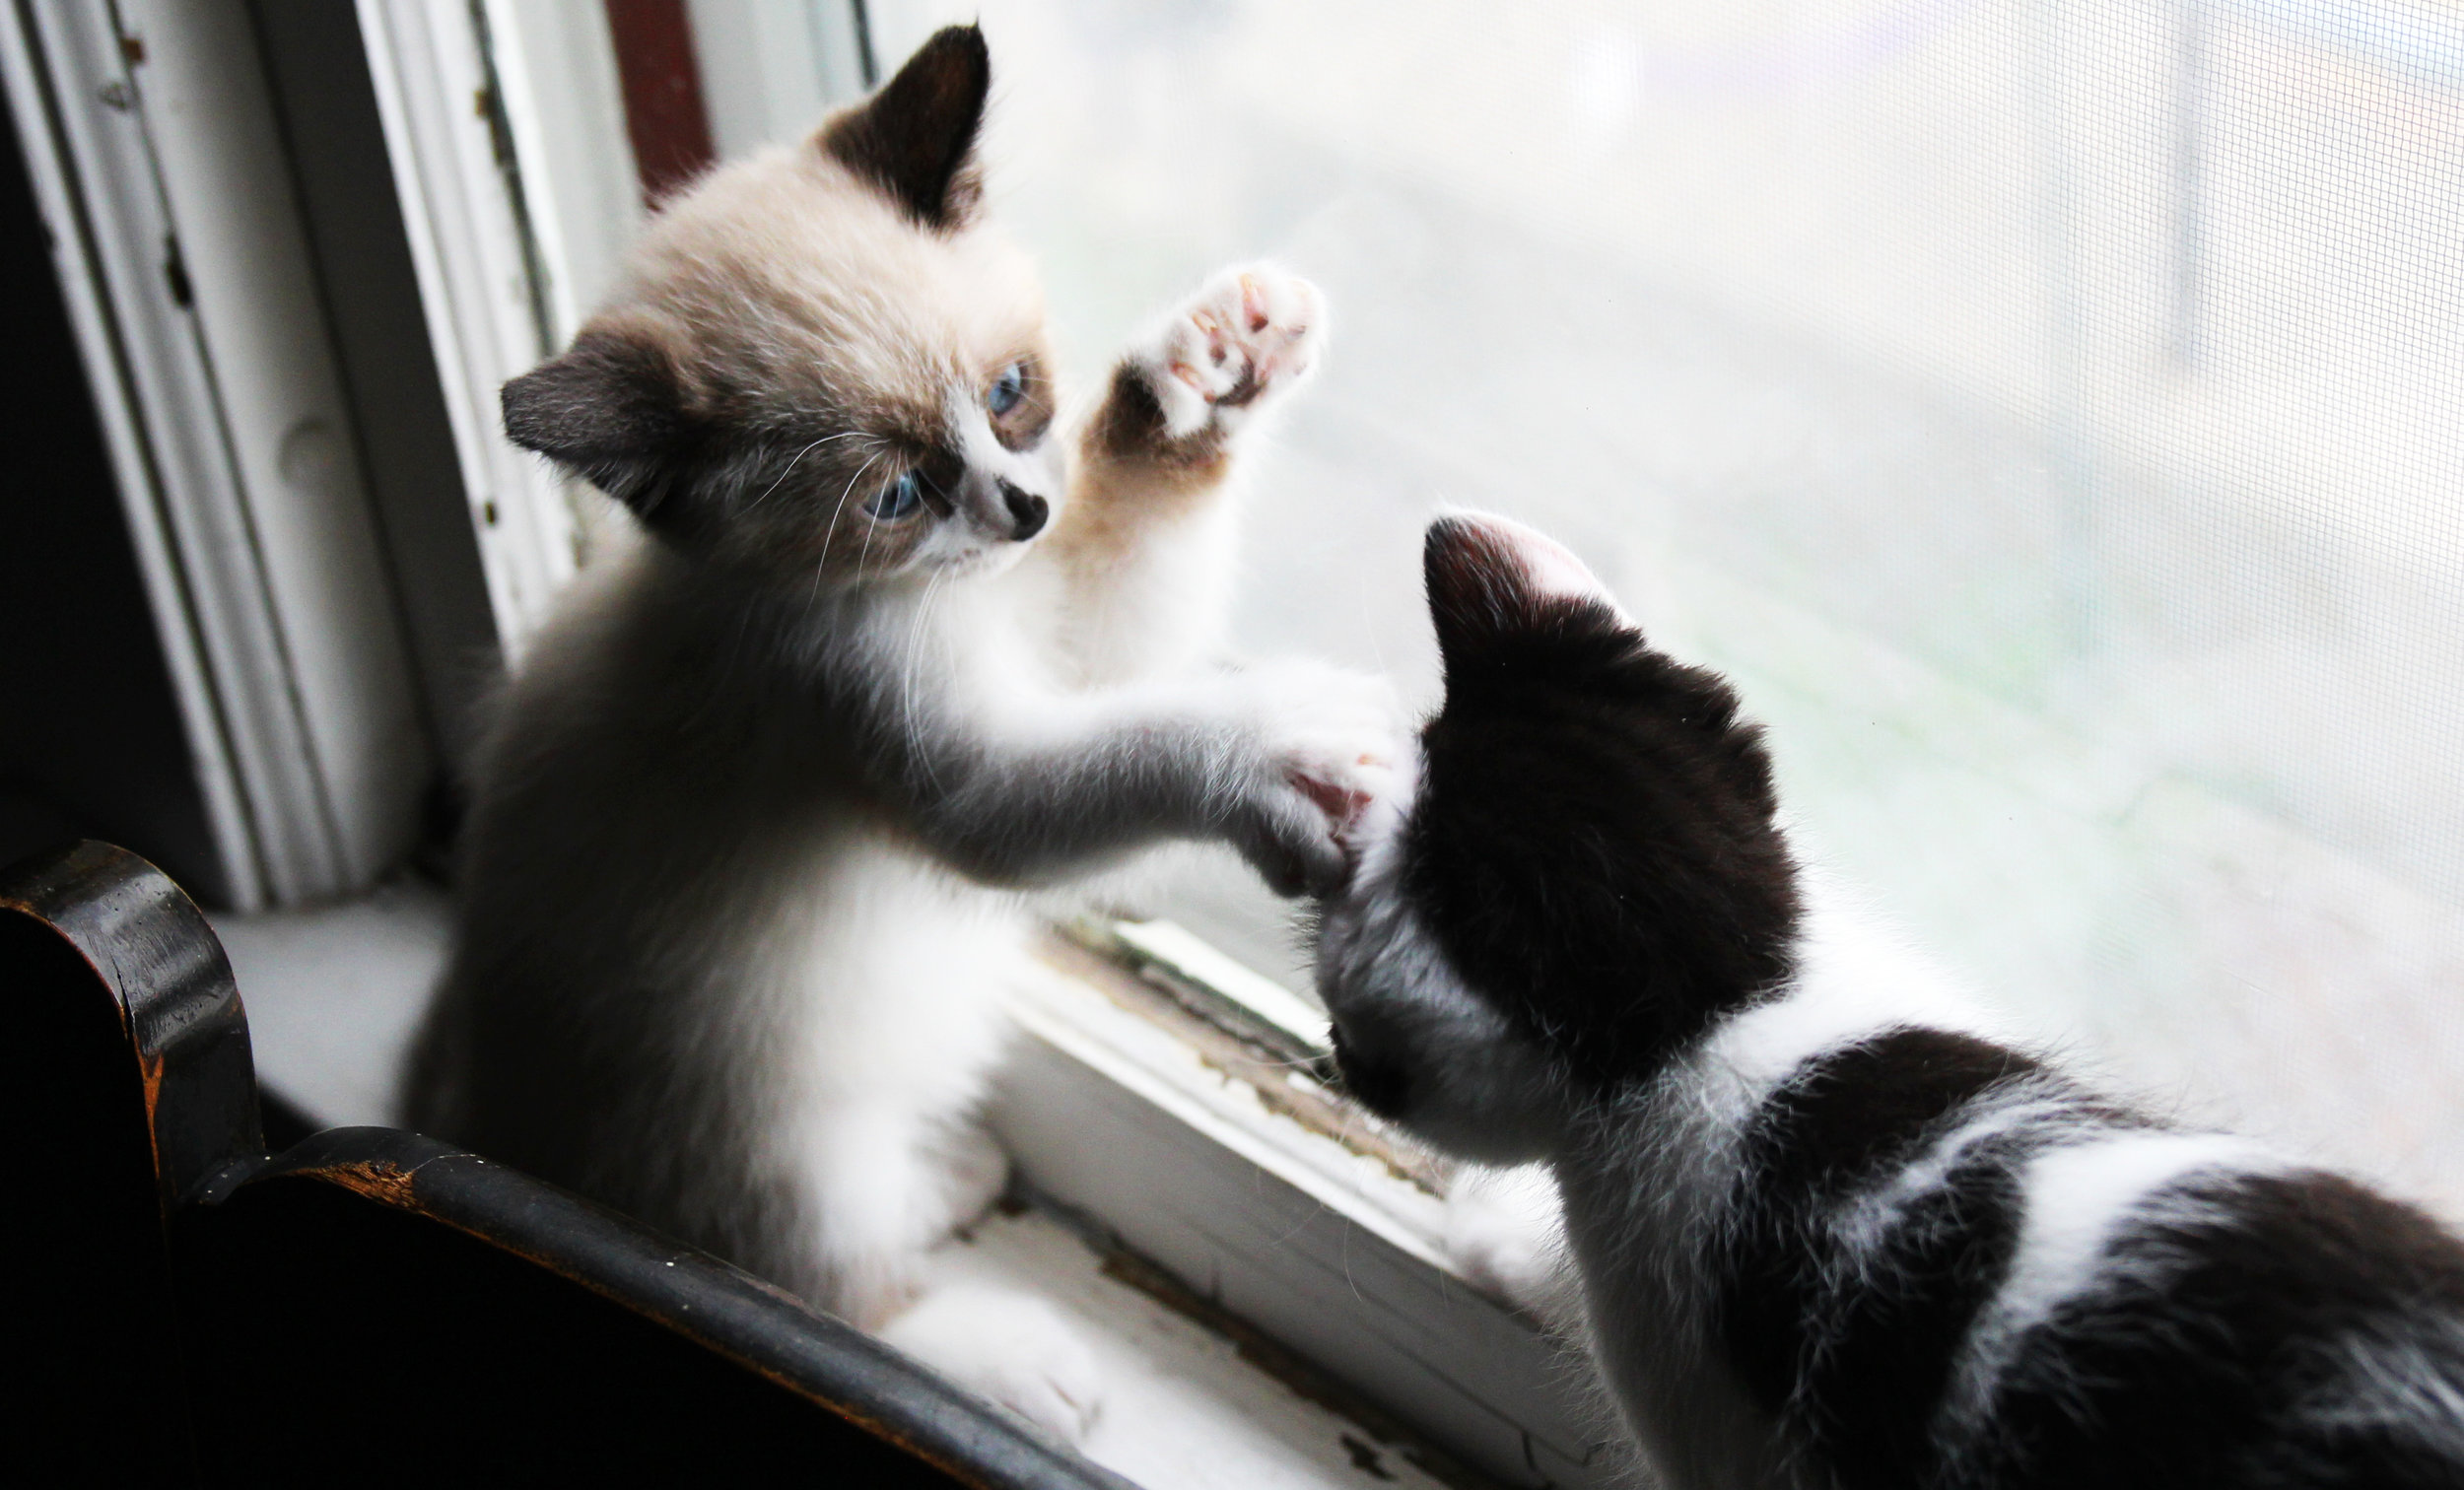 lily and rory kitten play.jpg